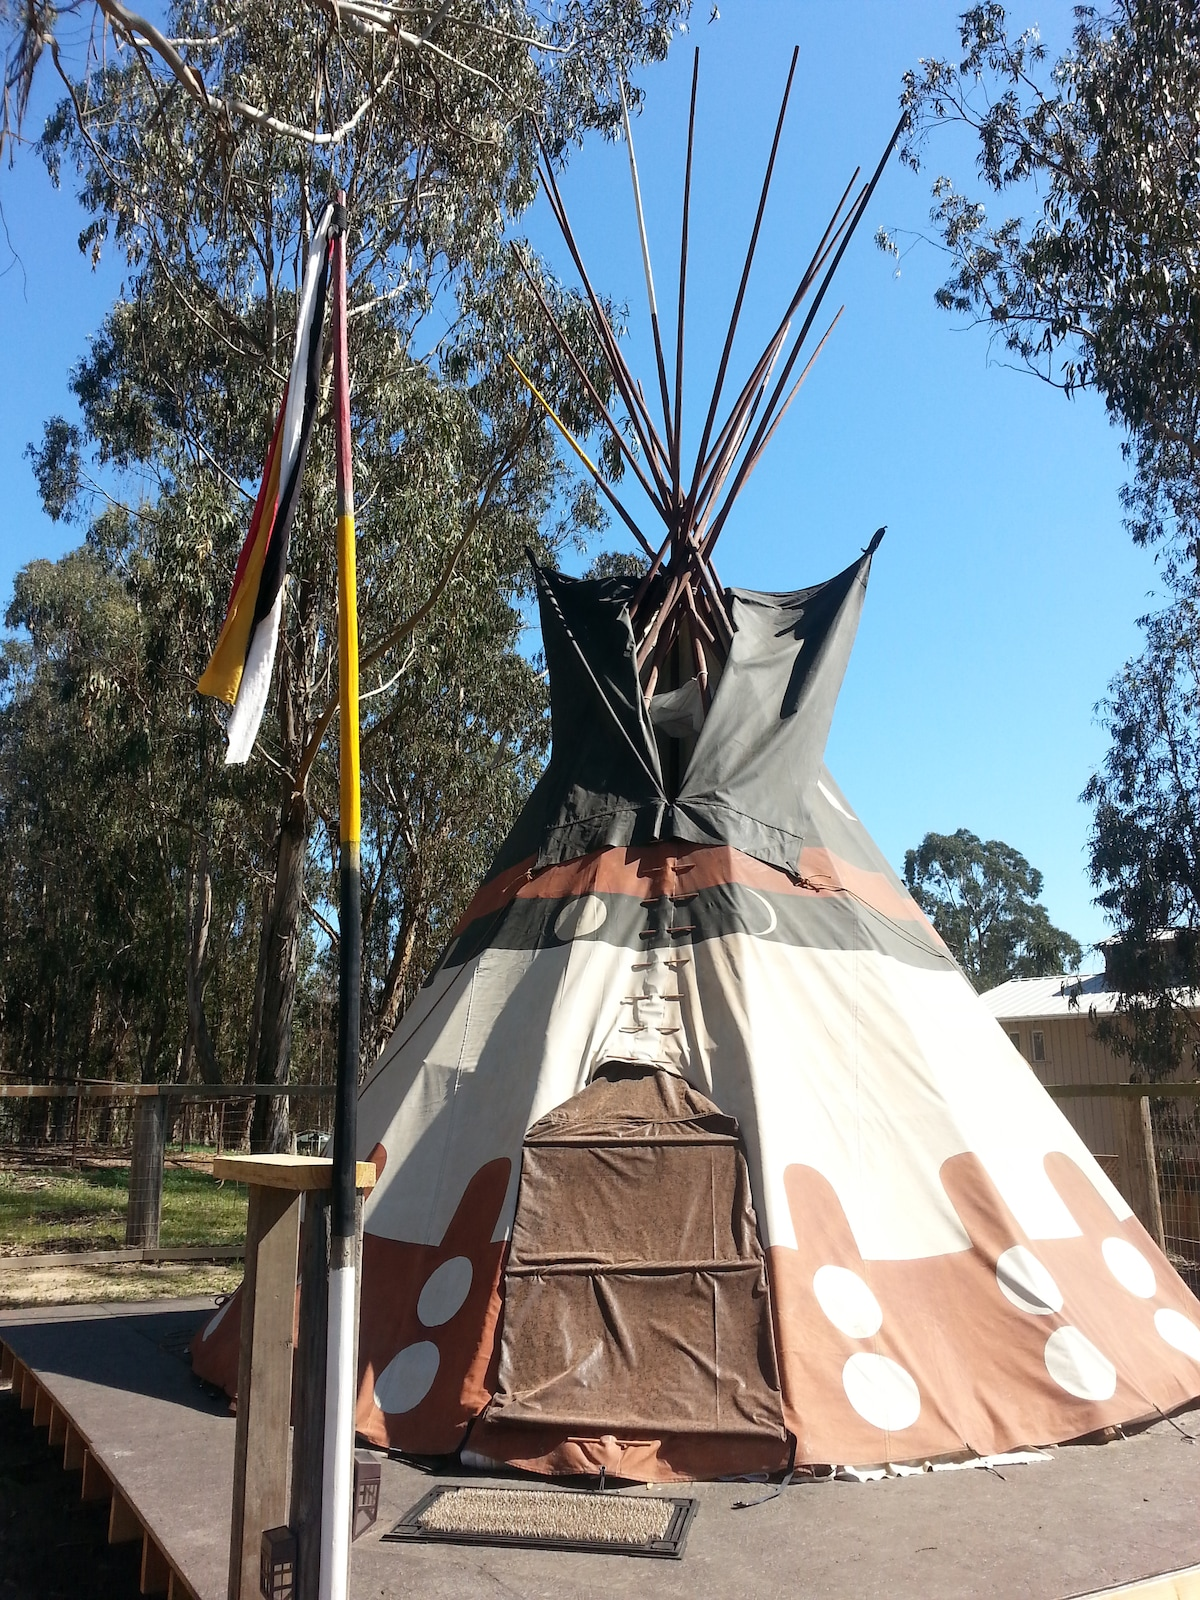 Authentic Native American Tipi on raised deck